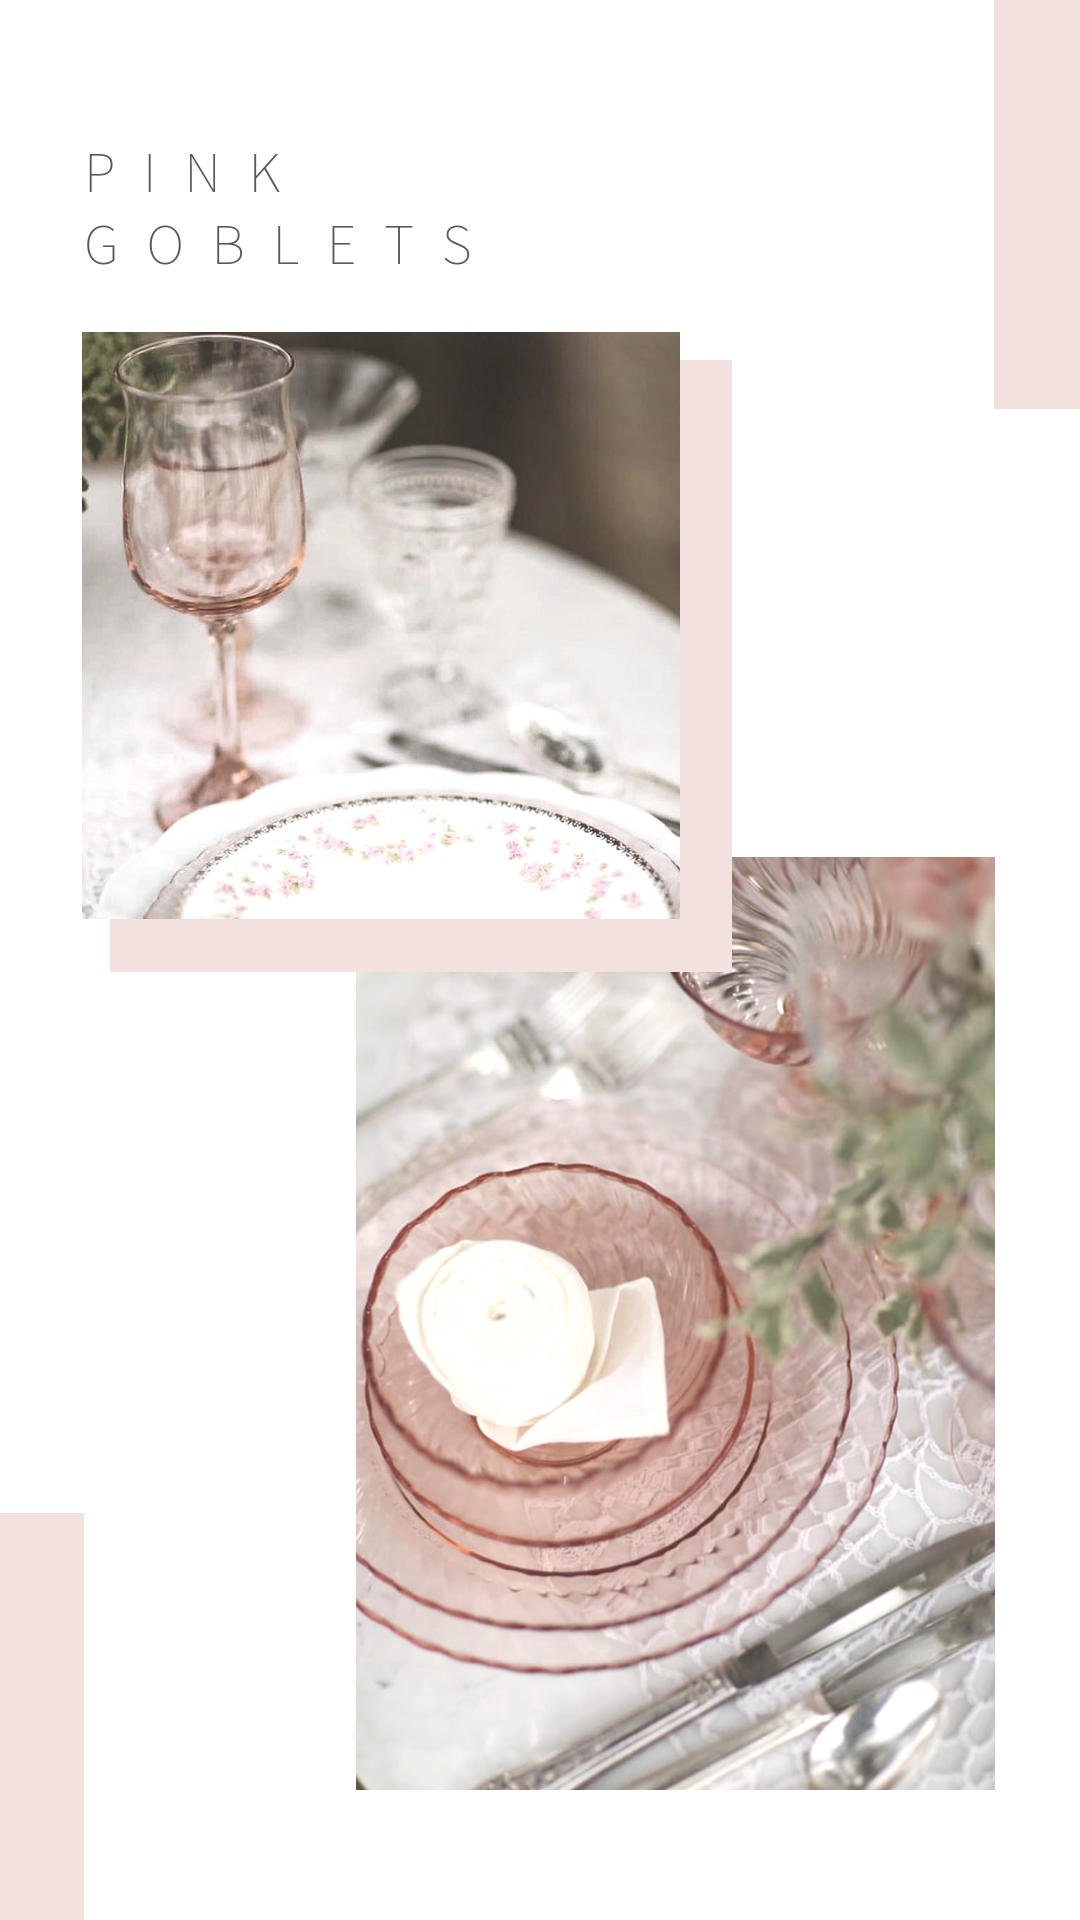 Pink goblets and pink glassware to rent for weddings and parties in the Temecula Valley.